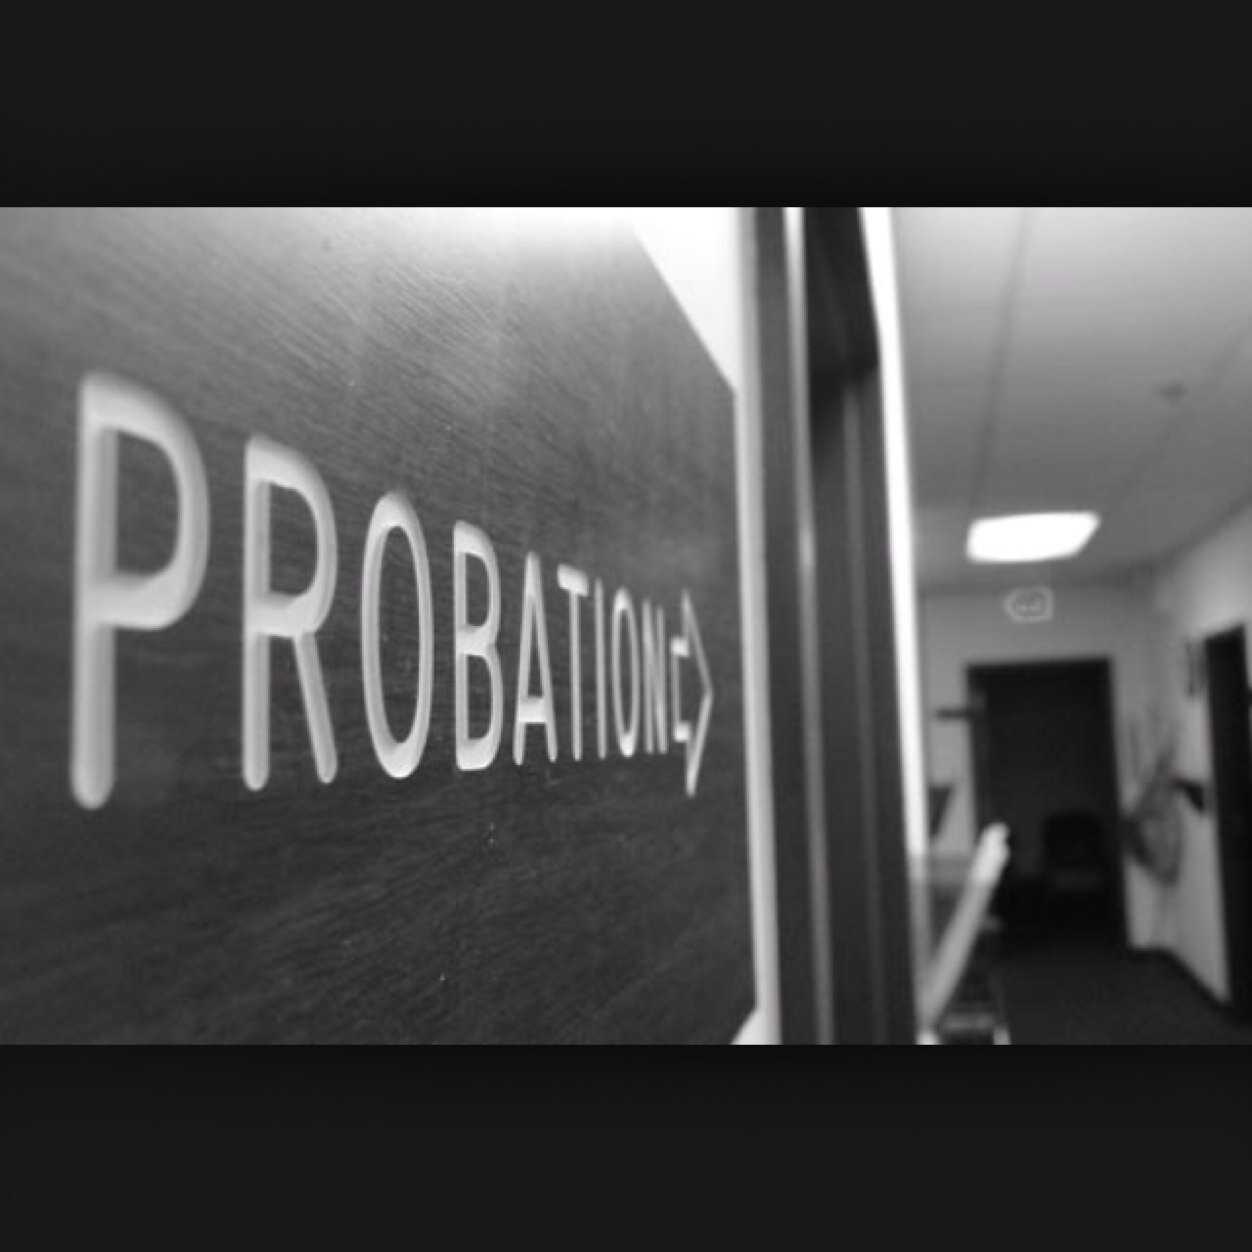 Is probation a privilege or a right